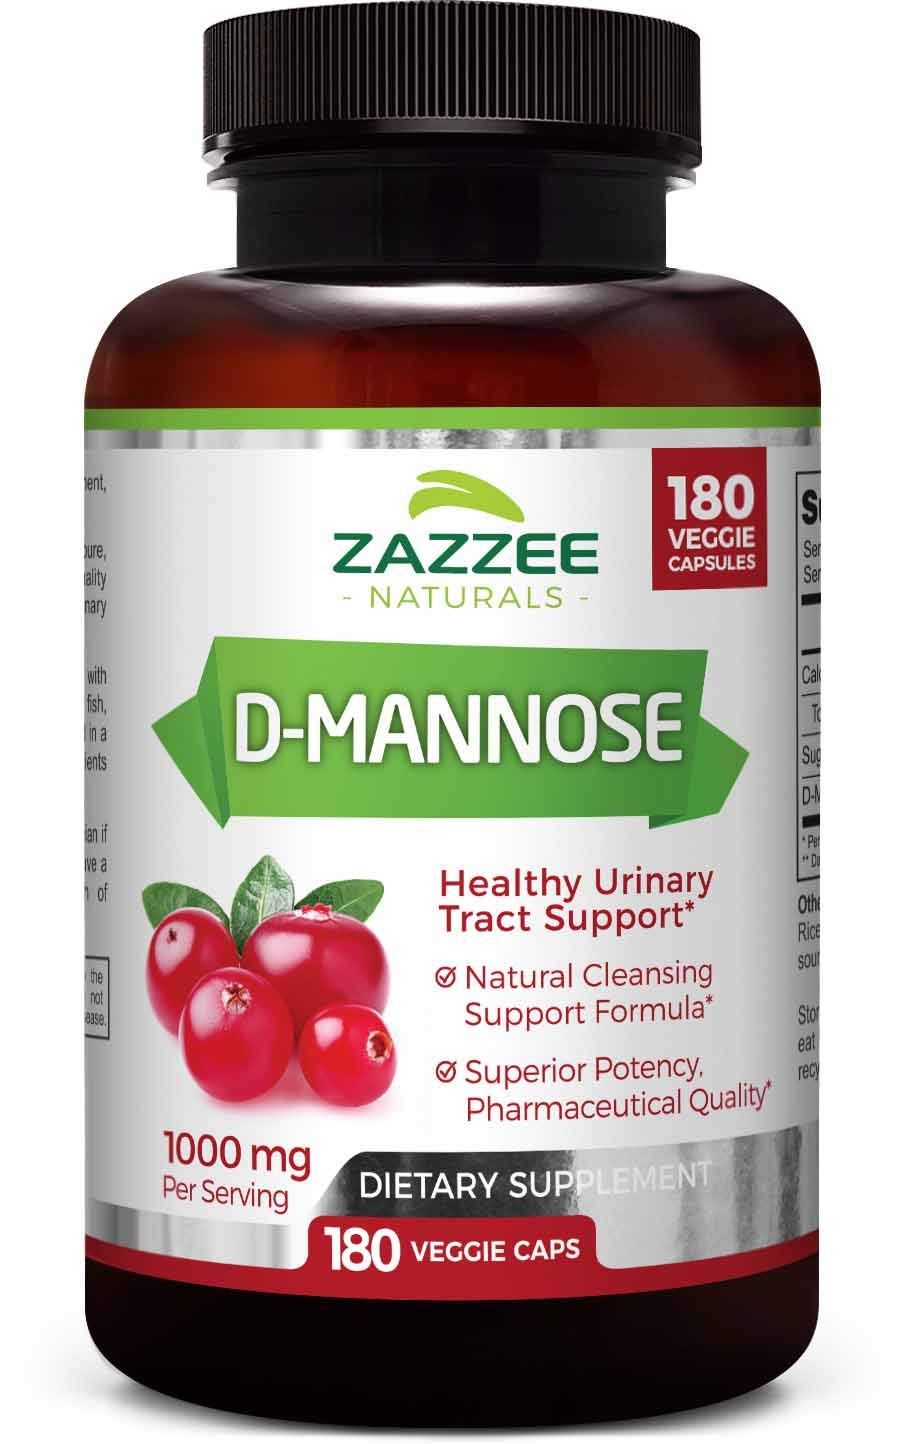 Zazzee D-Mannose 180 Veggie Capsules, 1000 mg per Serving, Pure, Potent and Fast-Acting, Extra Strength Dosage, Vegan, Non-GMO and All-Natural by Zazzee Naturals